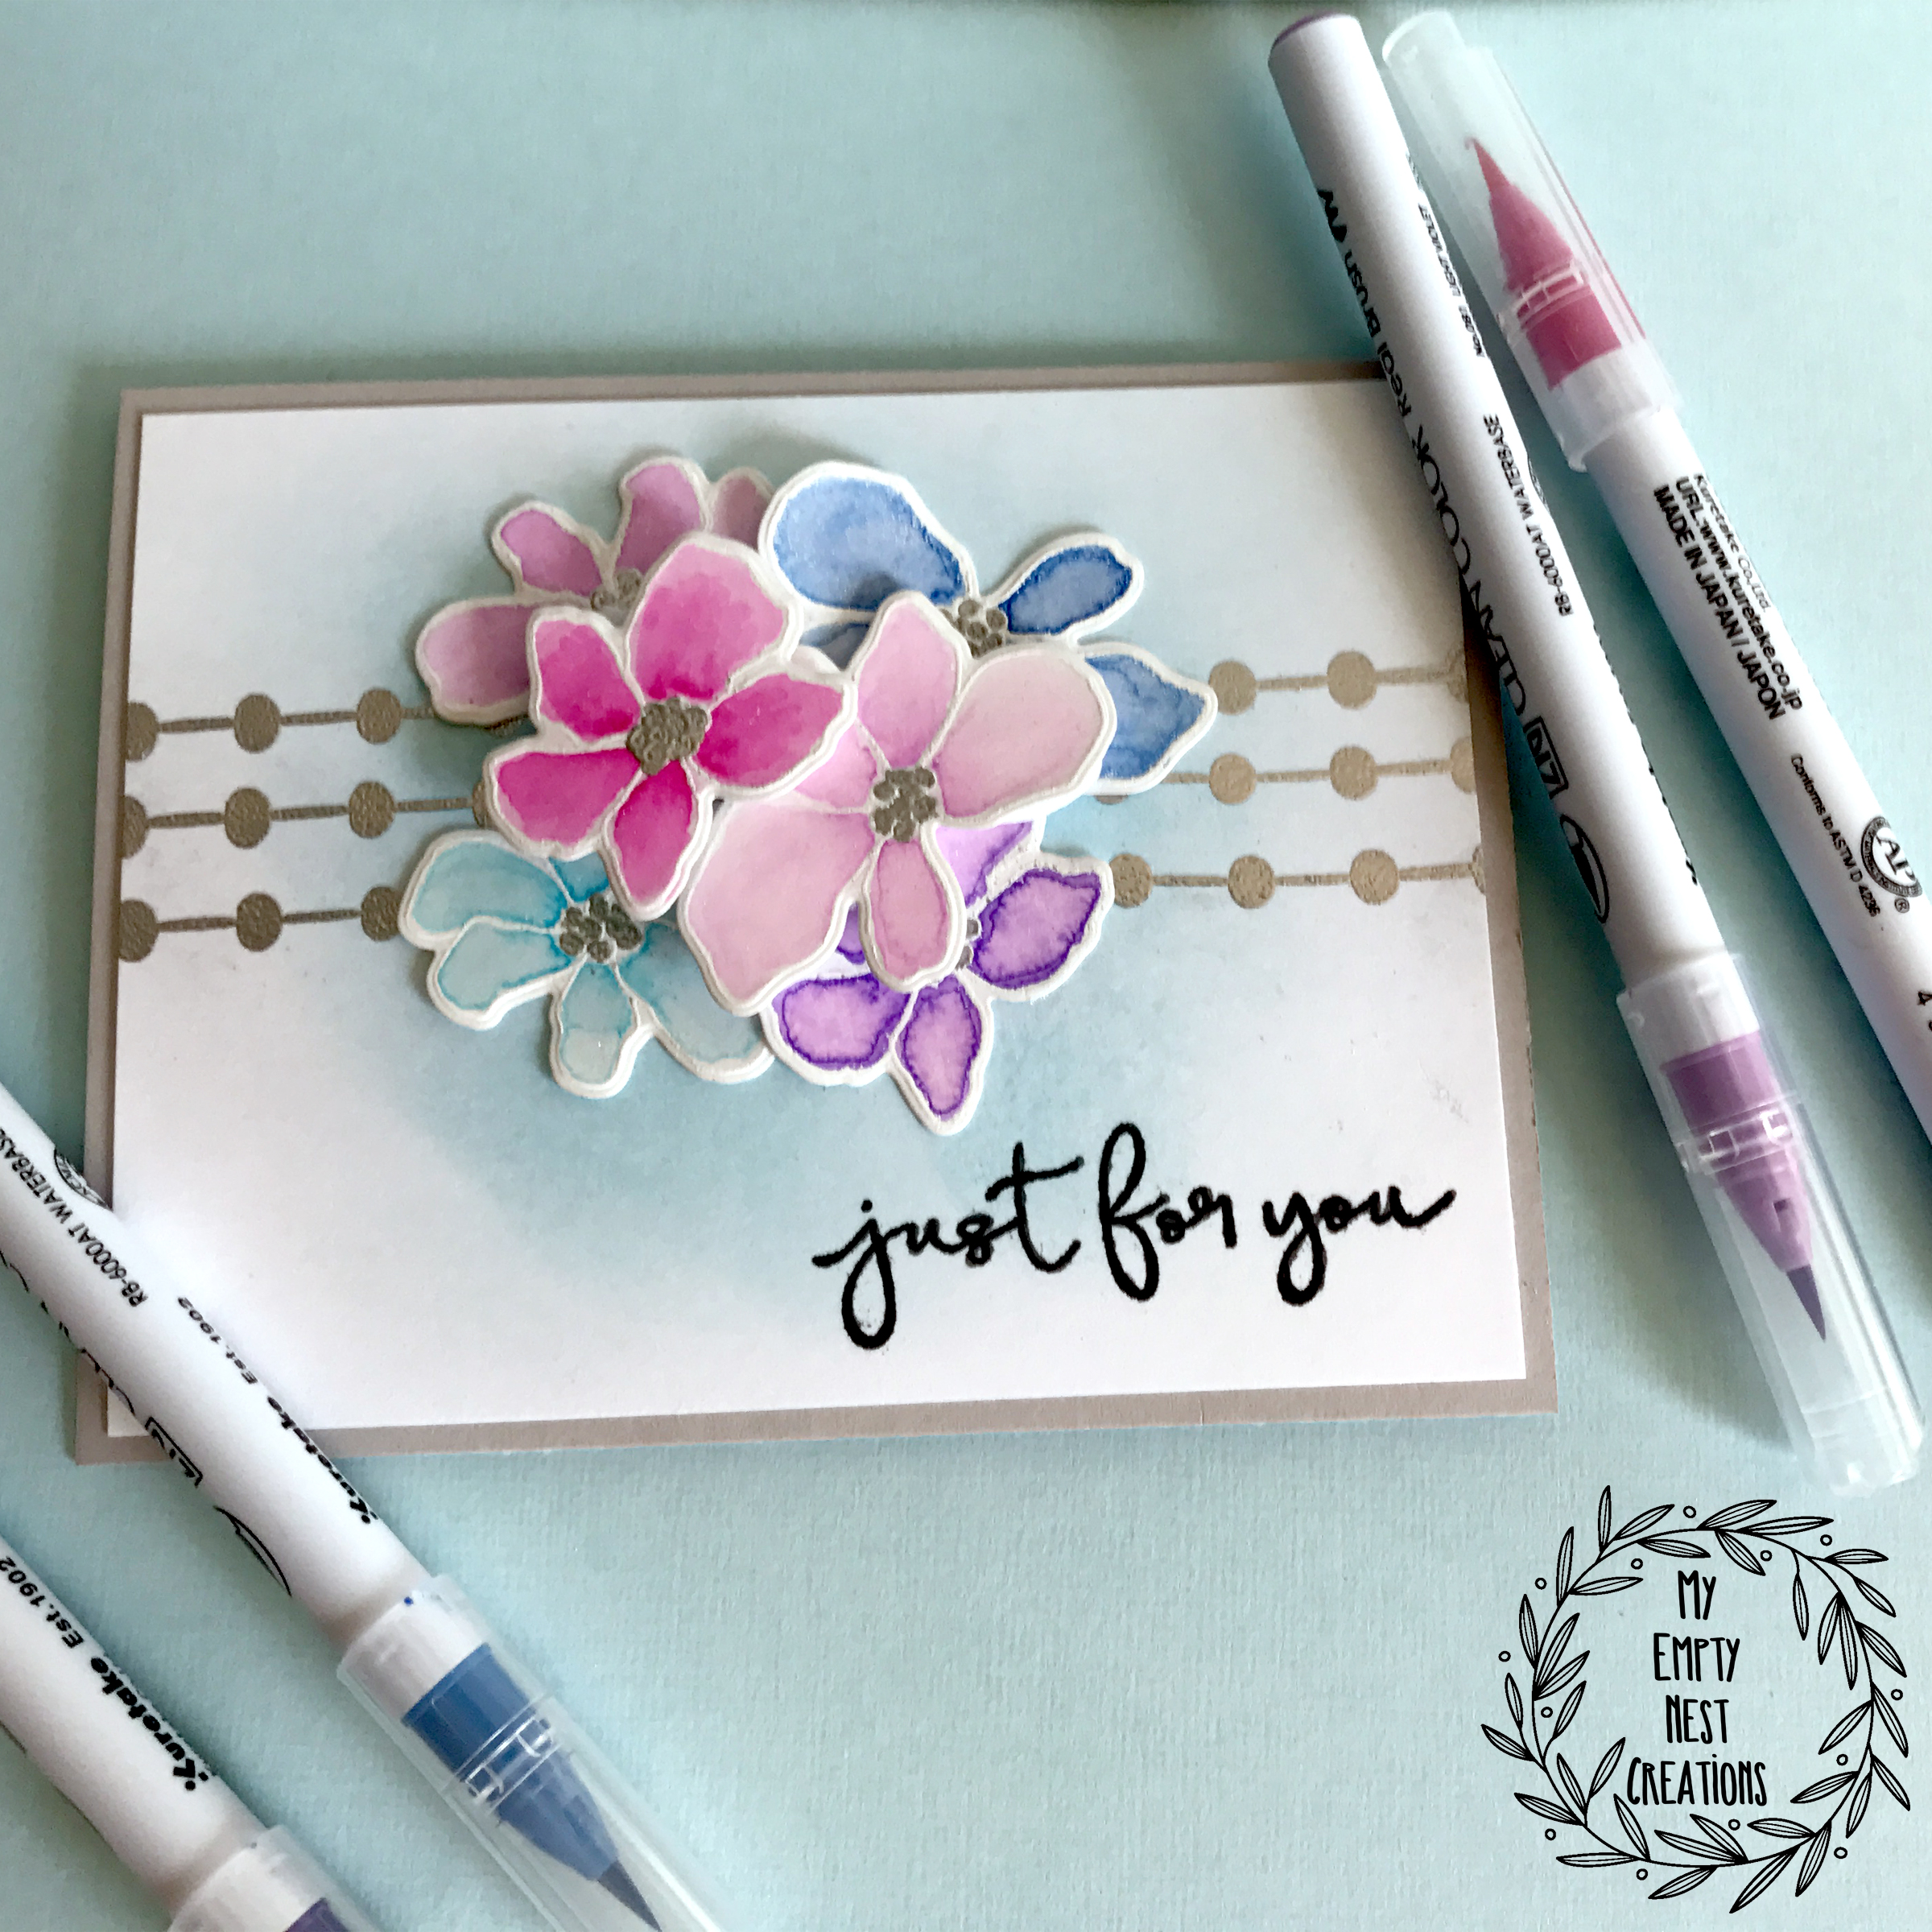 My Empty Nest Creations card using Simon Says Stamp Artsy Flowers